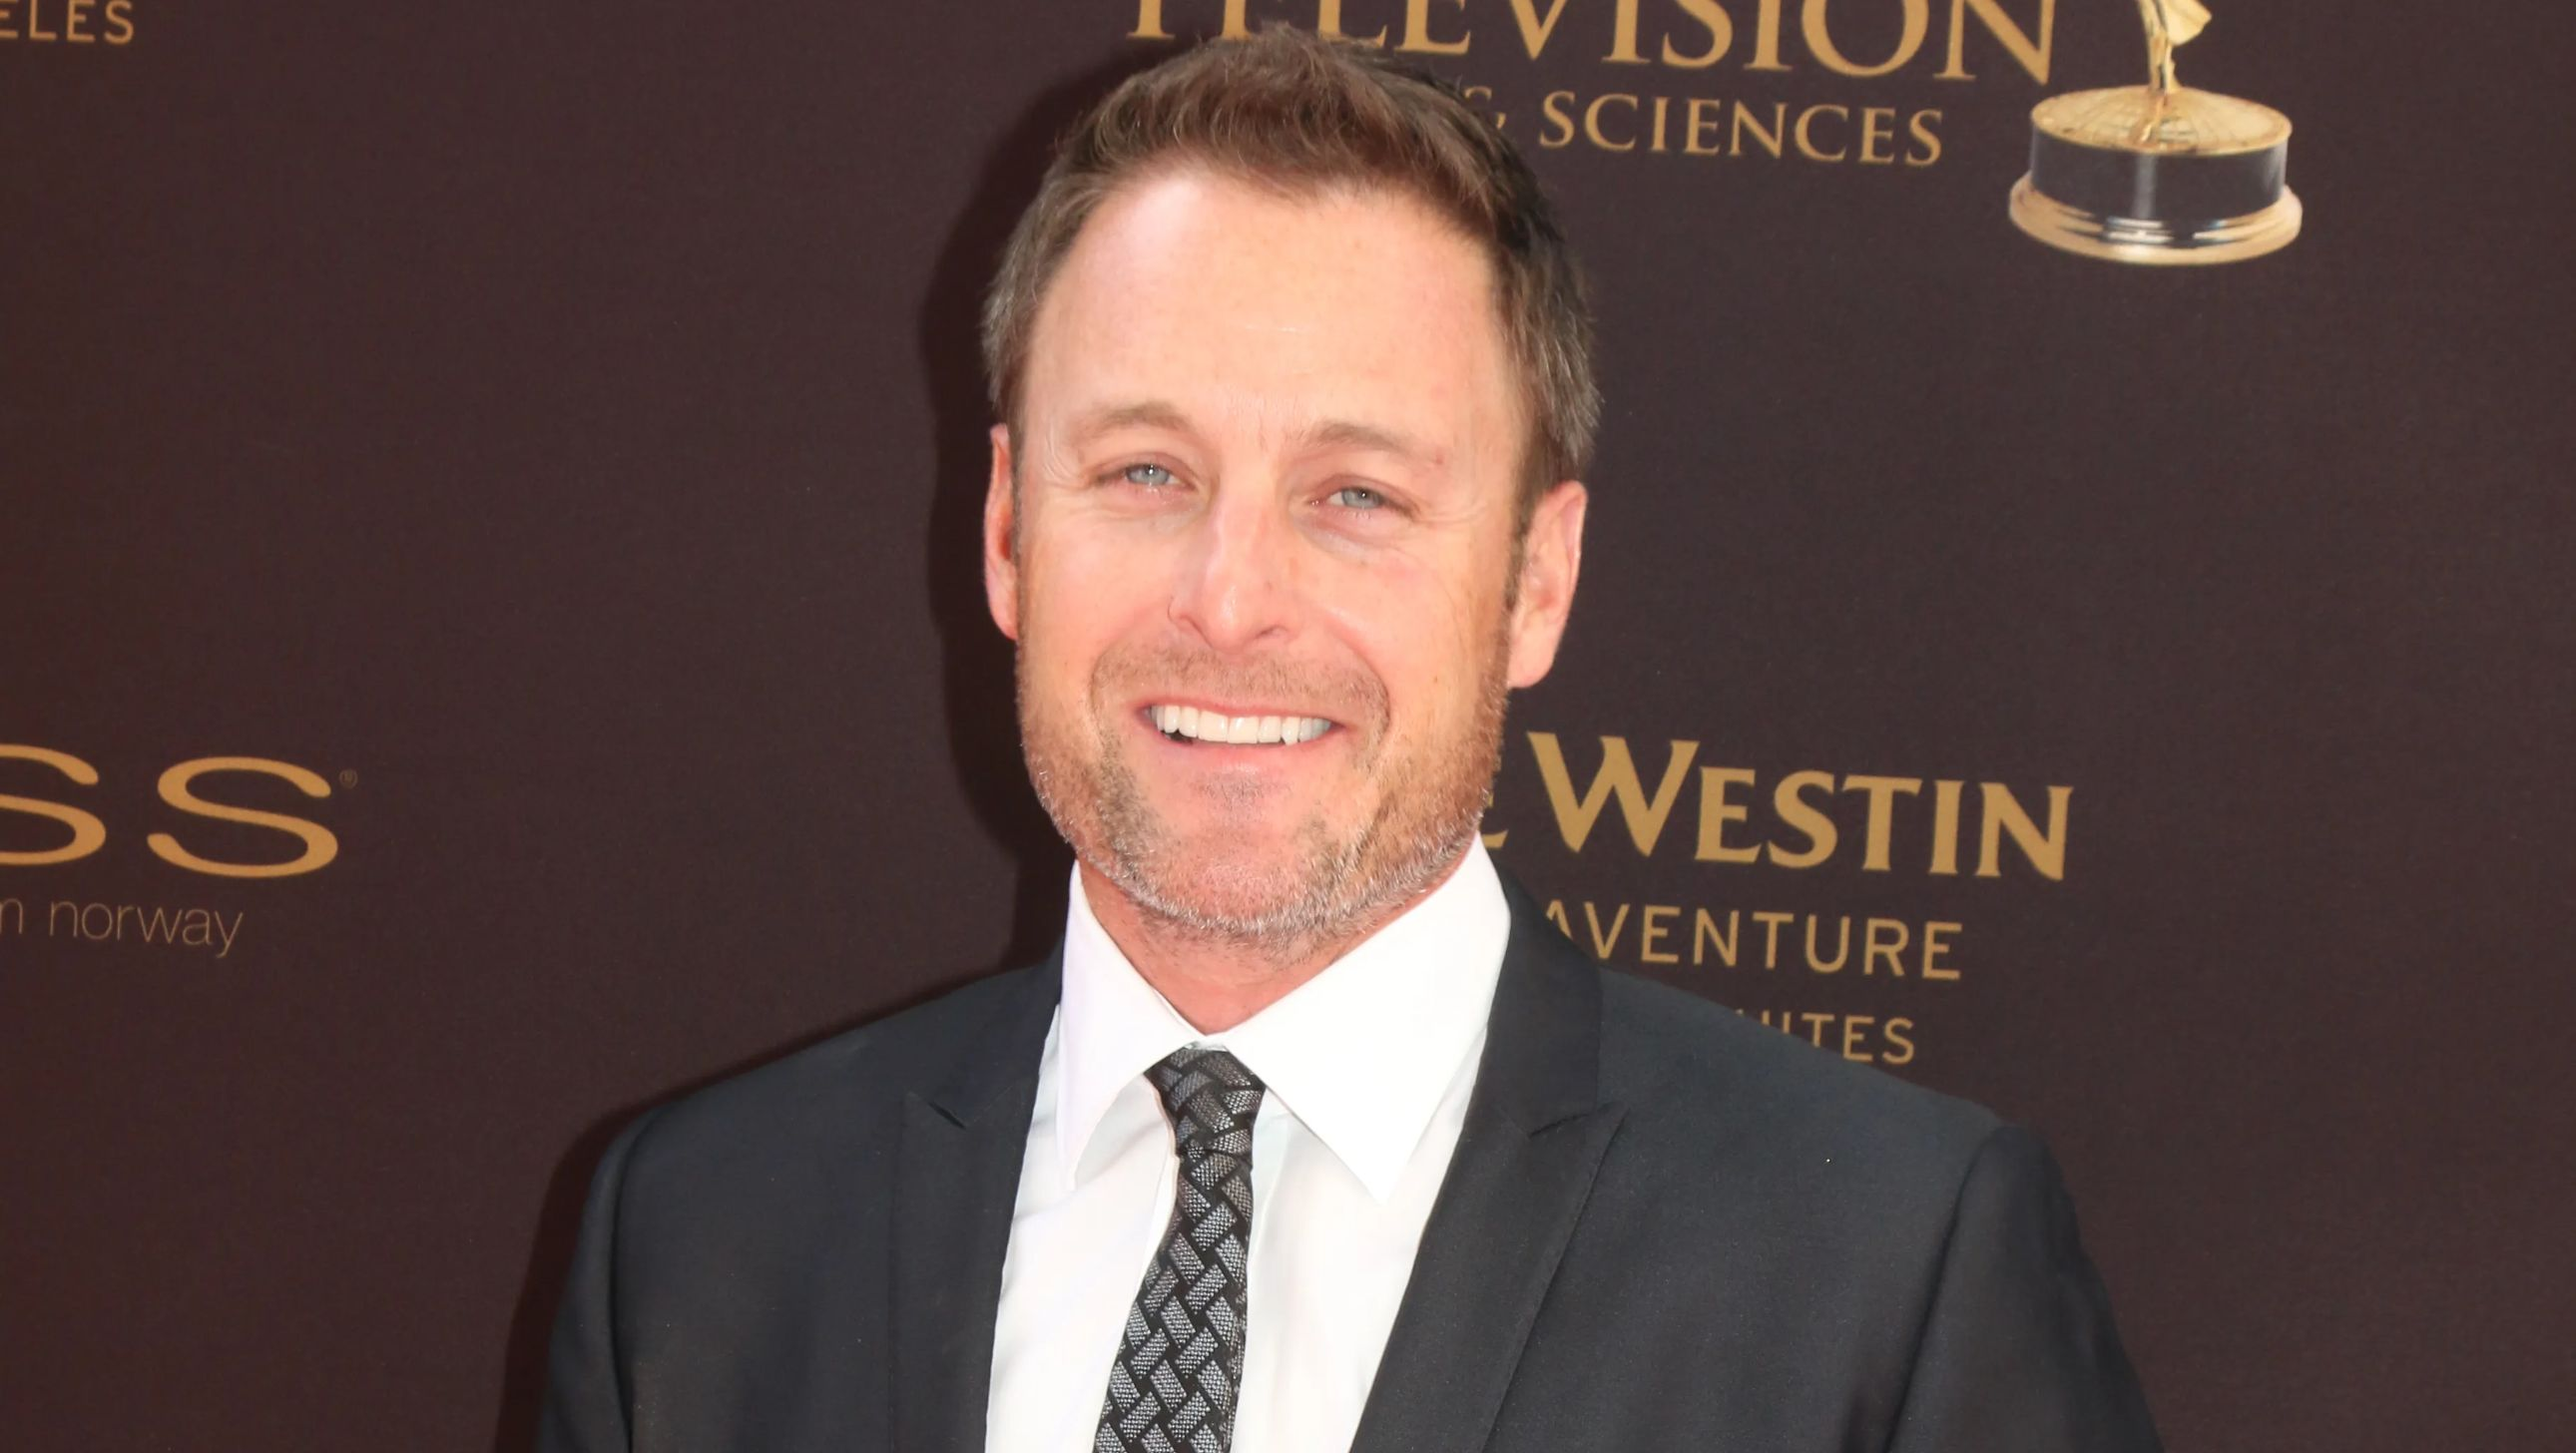 Chris Harrison in a suit and tie